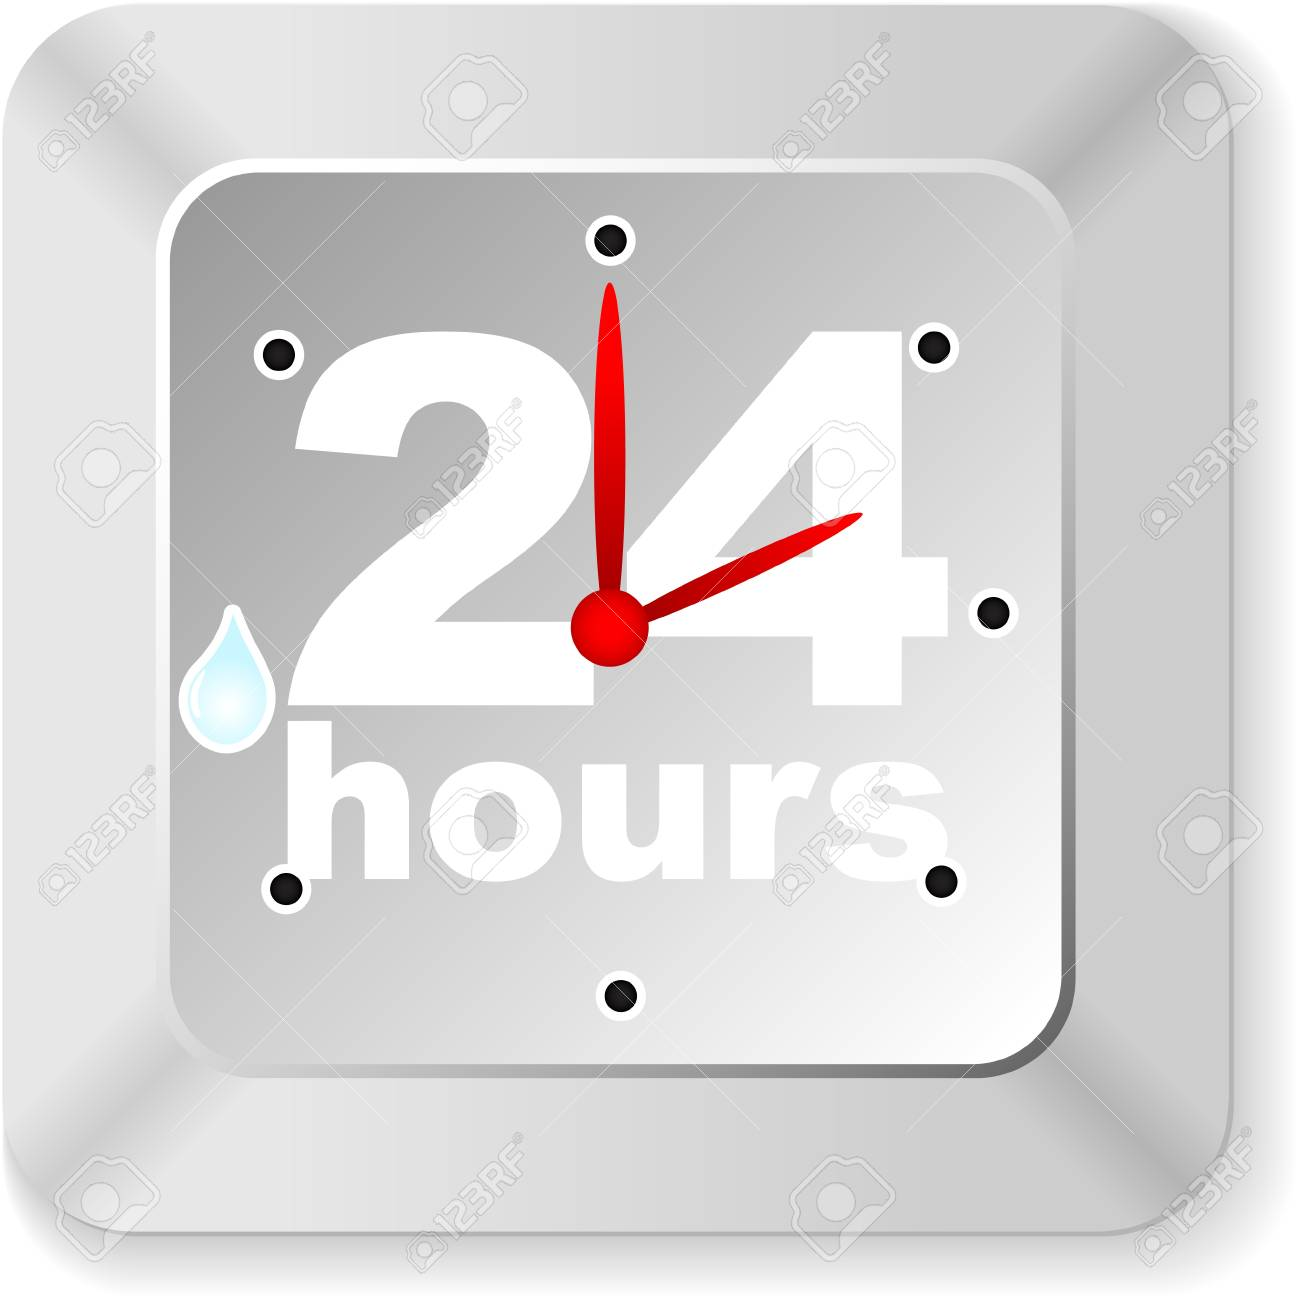 twenty hours button Stock Vector - 10806102